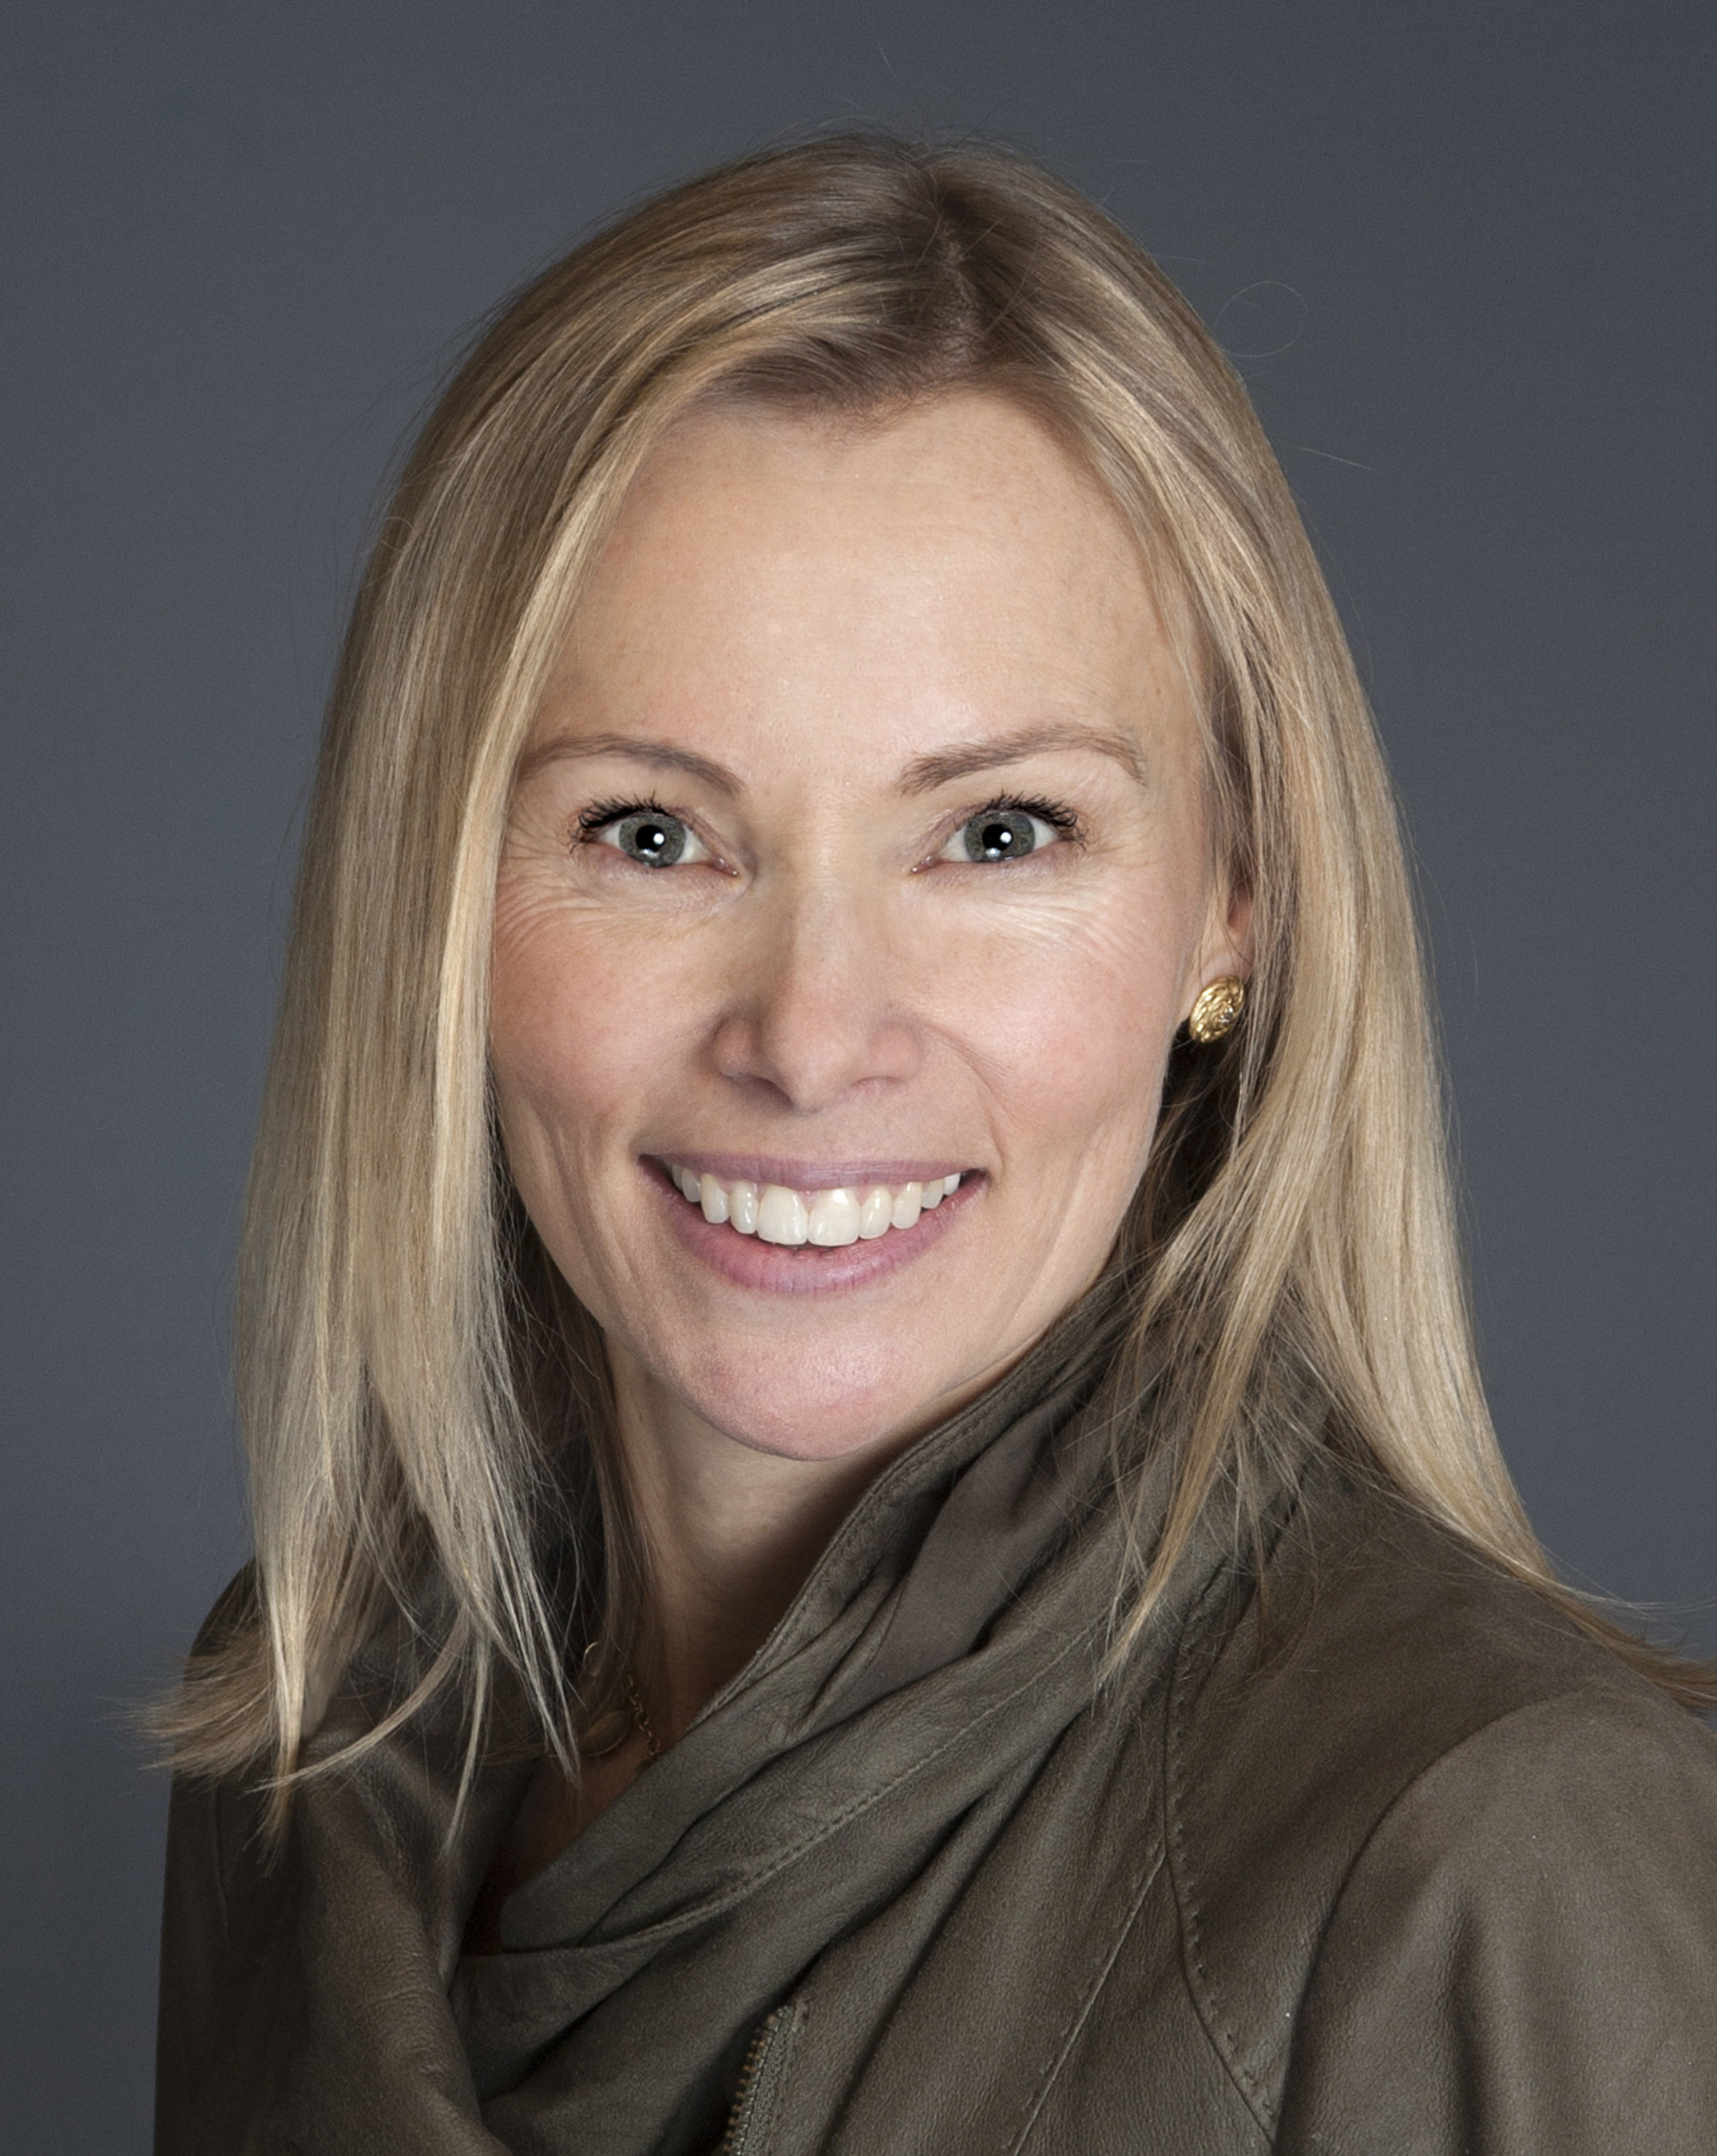 Ella Gudwin joins VisionSpring as President to lead operations and growth.